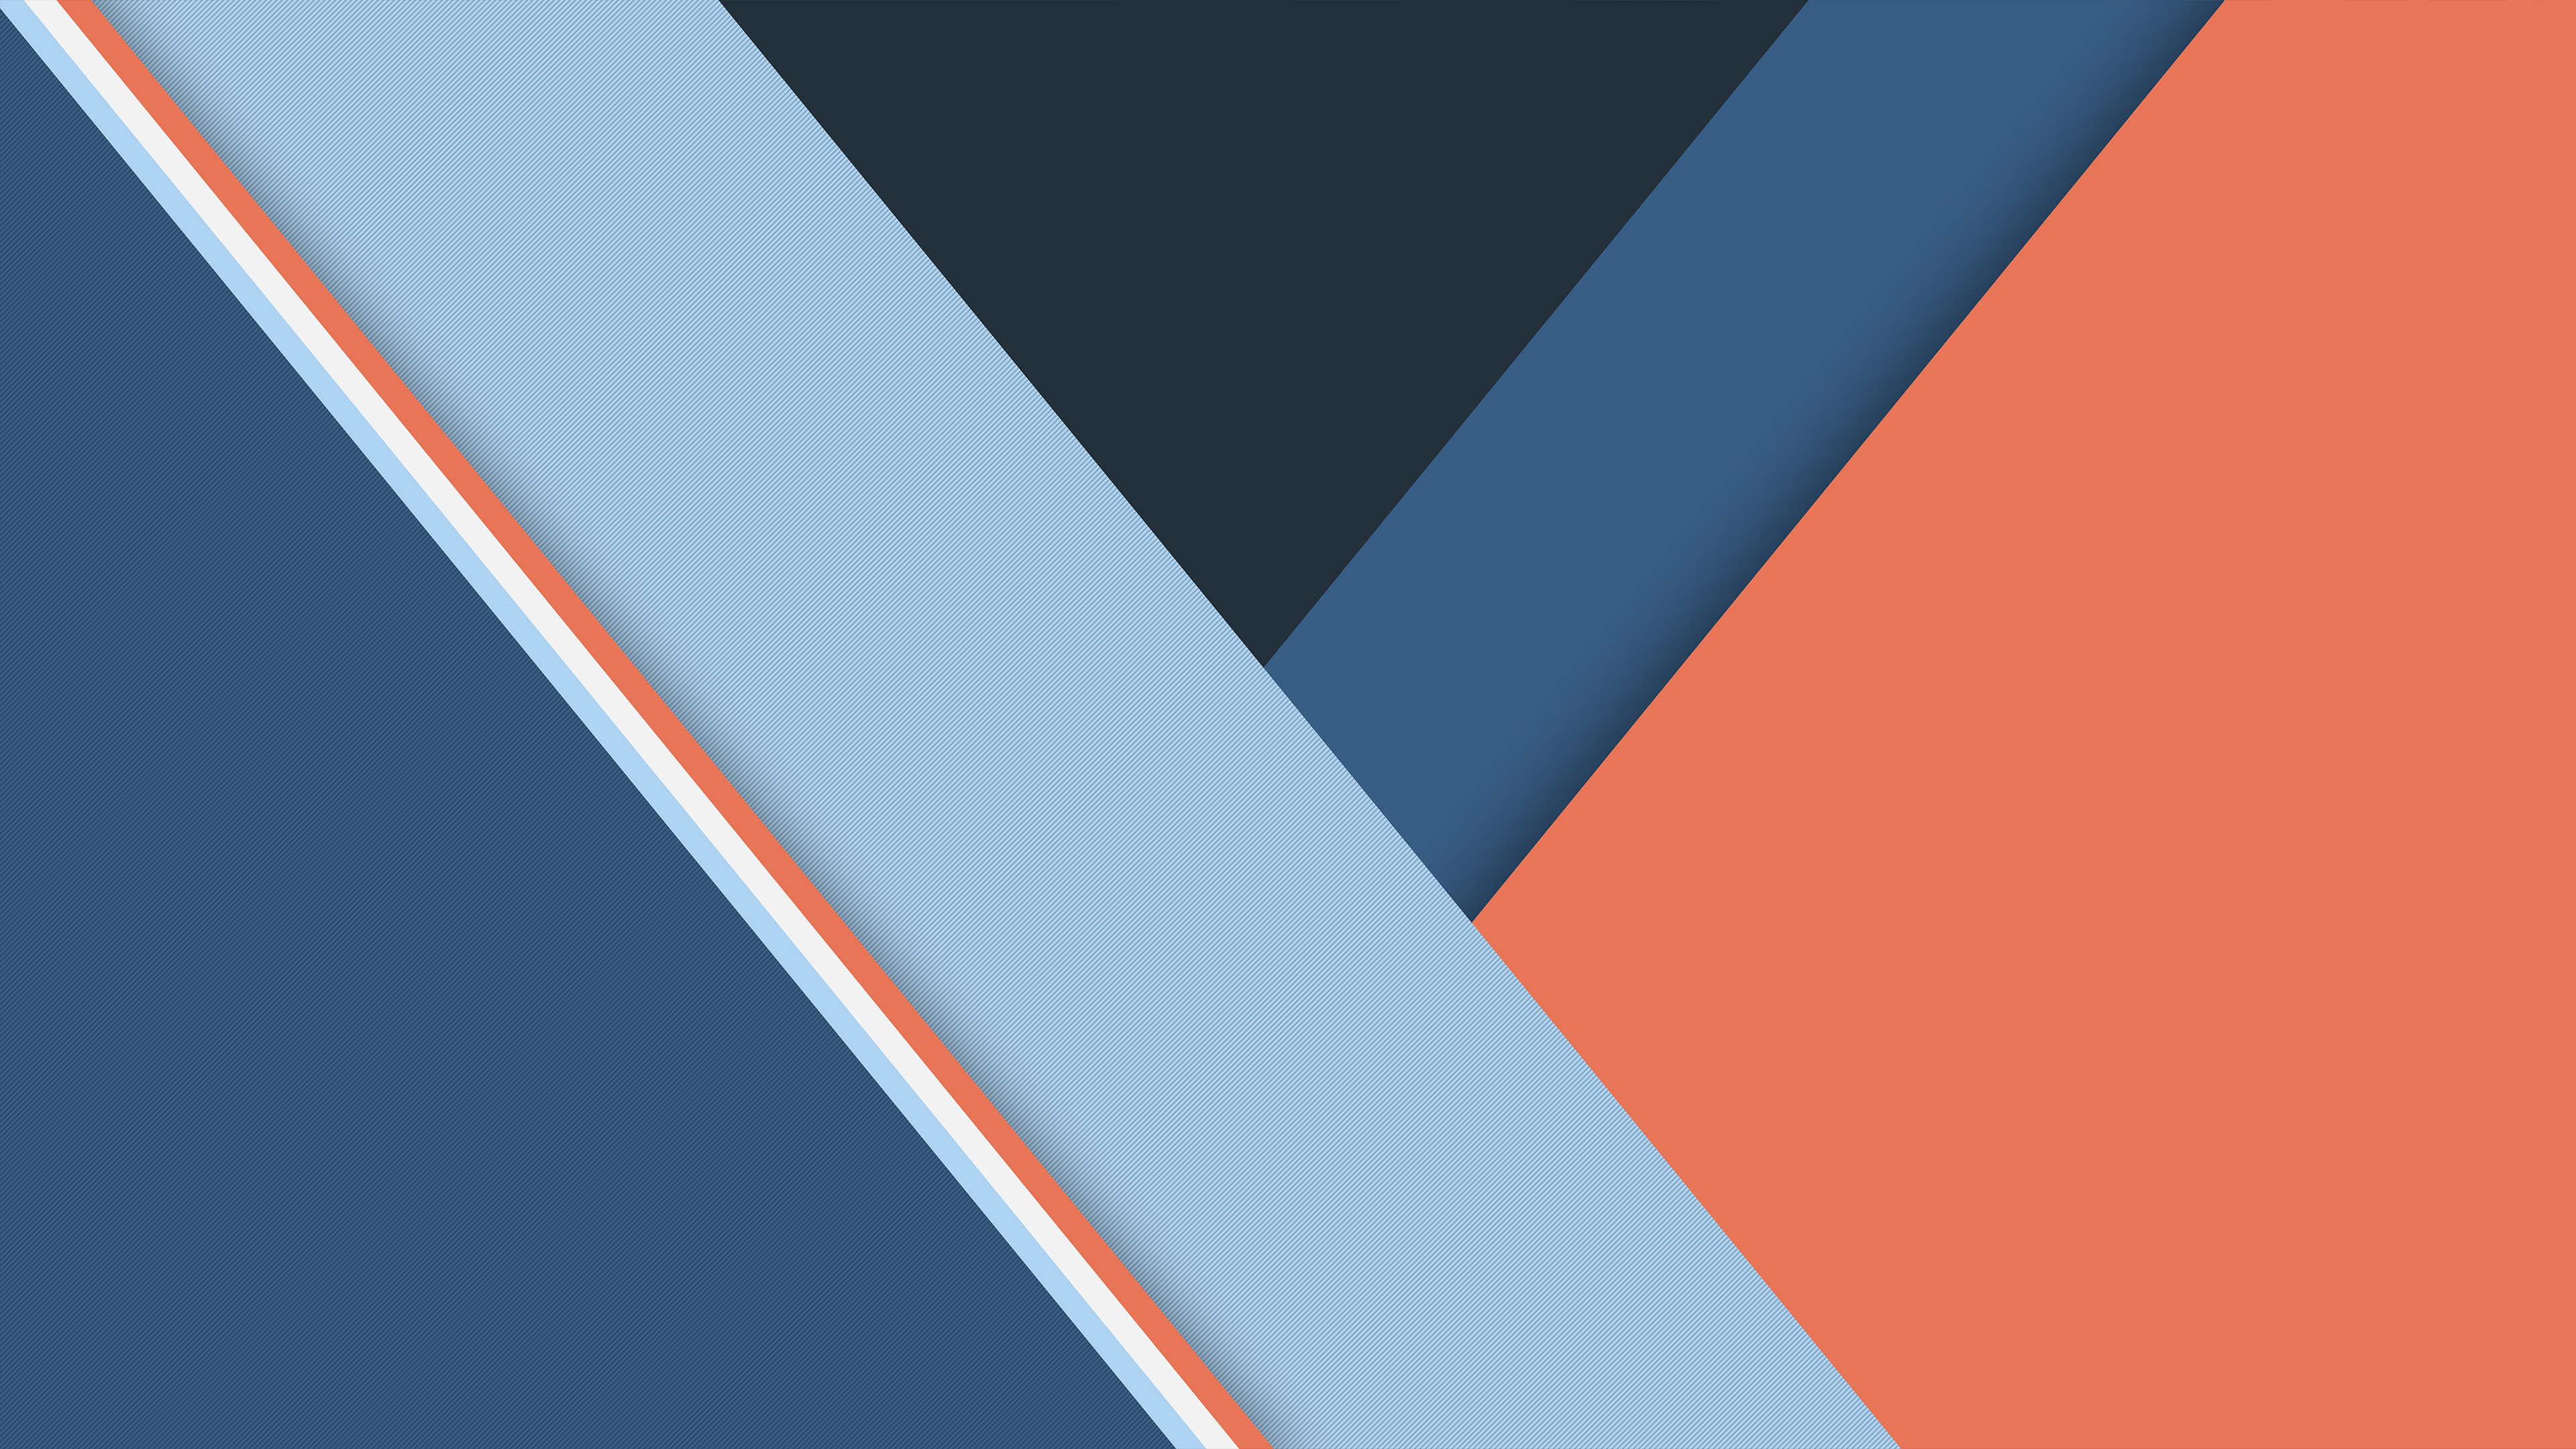 abstract lines minimalist 4k 1616870925 - Abstract Lines Minimalist 4k - Abstract Lines Minimalist 4k wallpapers